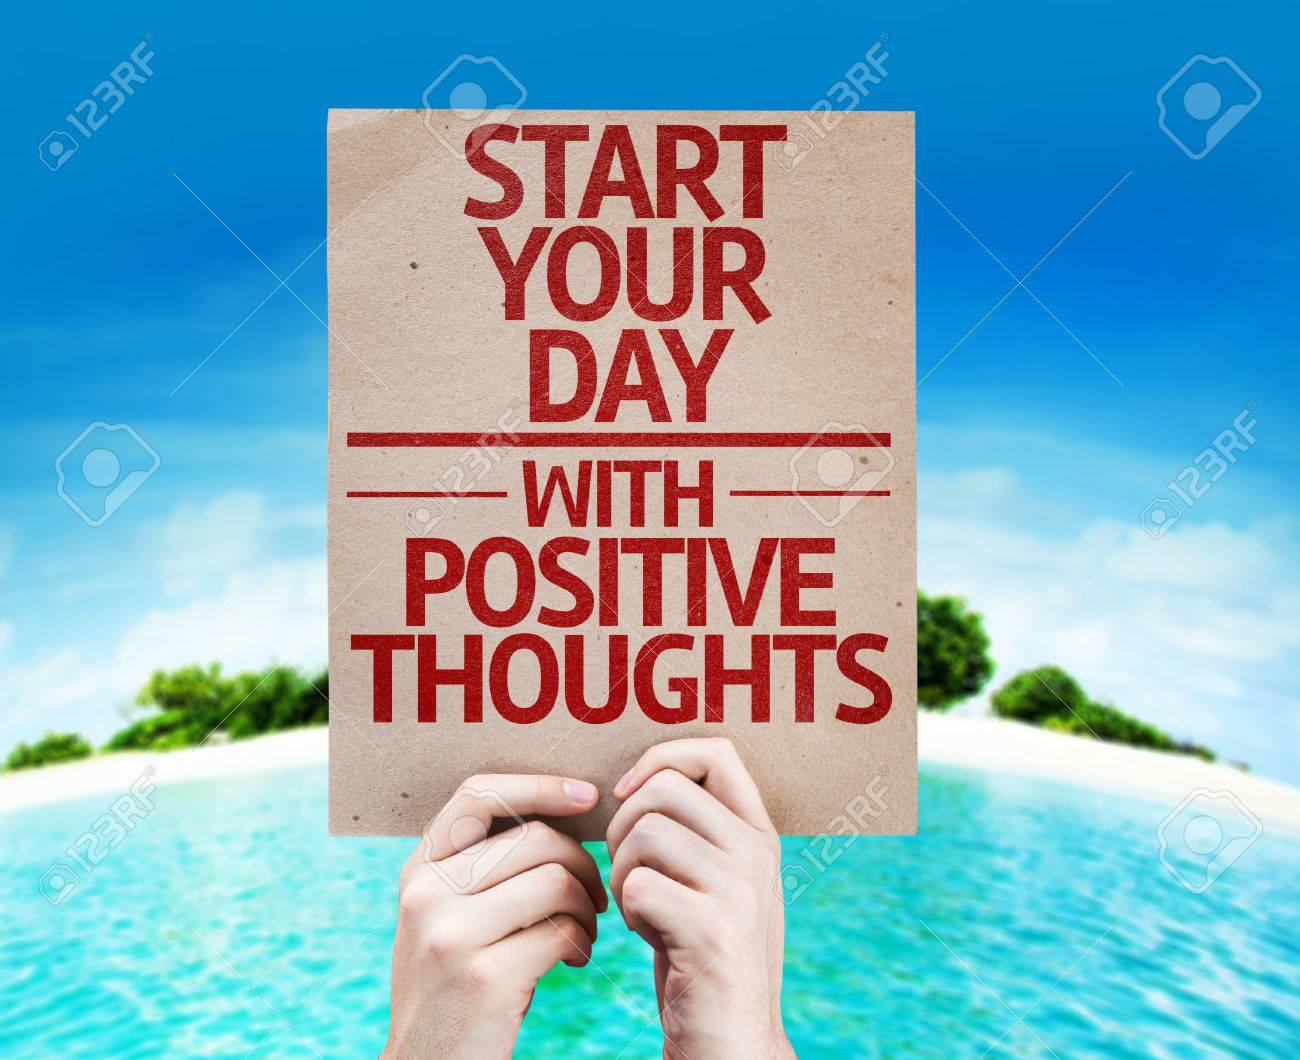 Hands Holding Cardboard With Start Your Day With Positive Thoughts Stock Photo Picture And Royalty Free Image Image 55755436